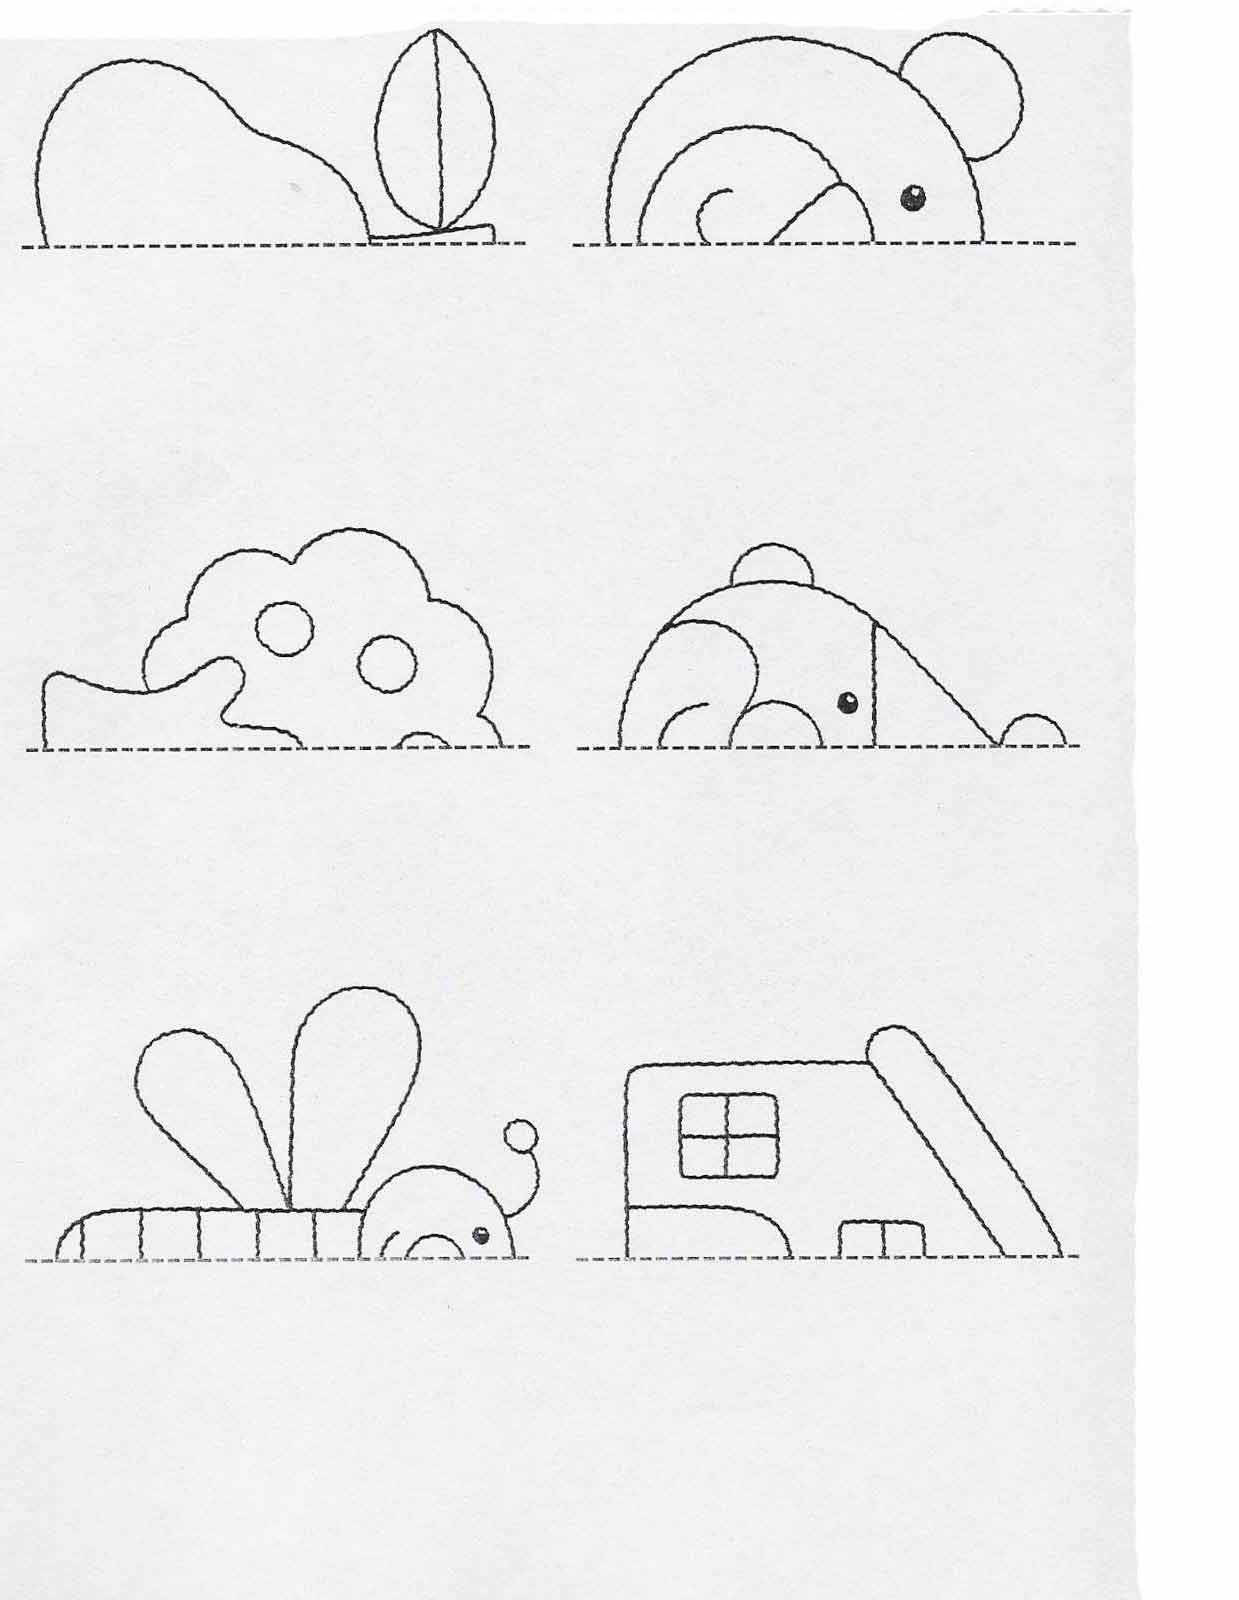 Printable Activities For Kids Complete The Drawings 60